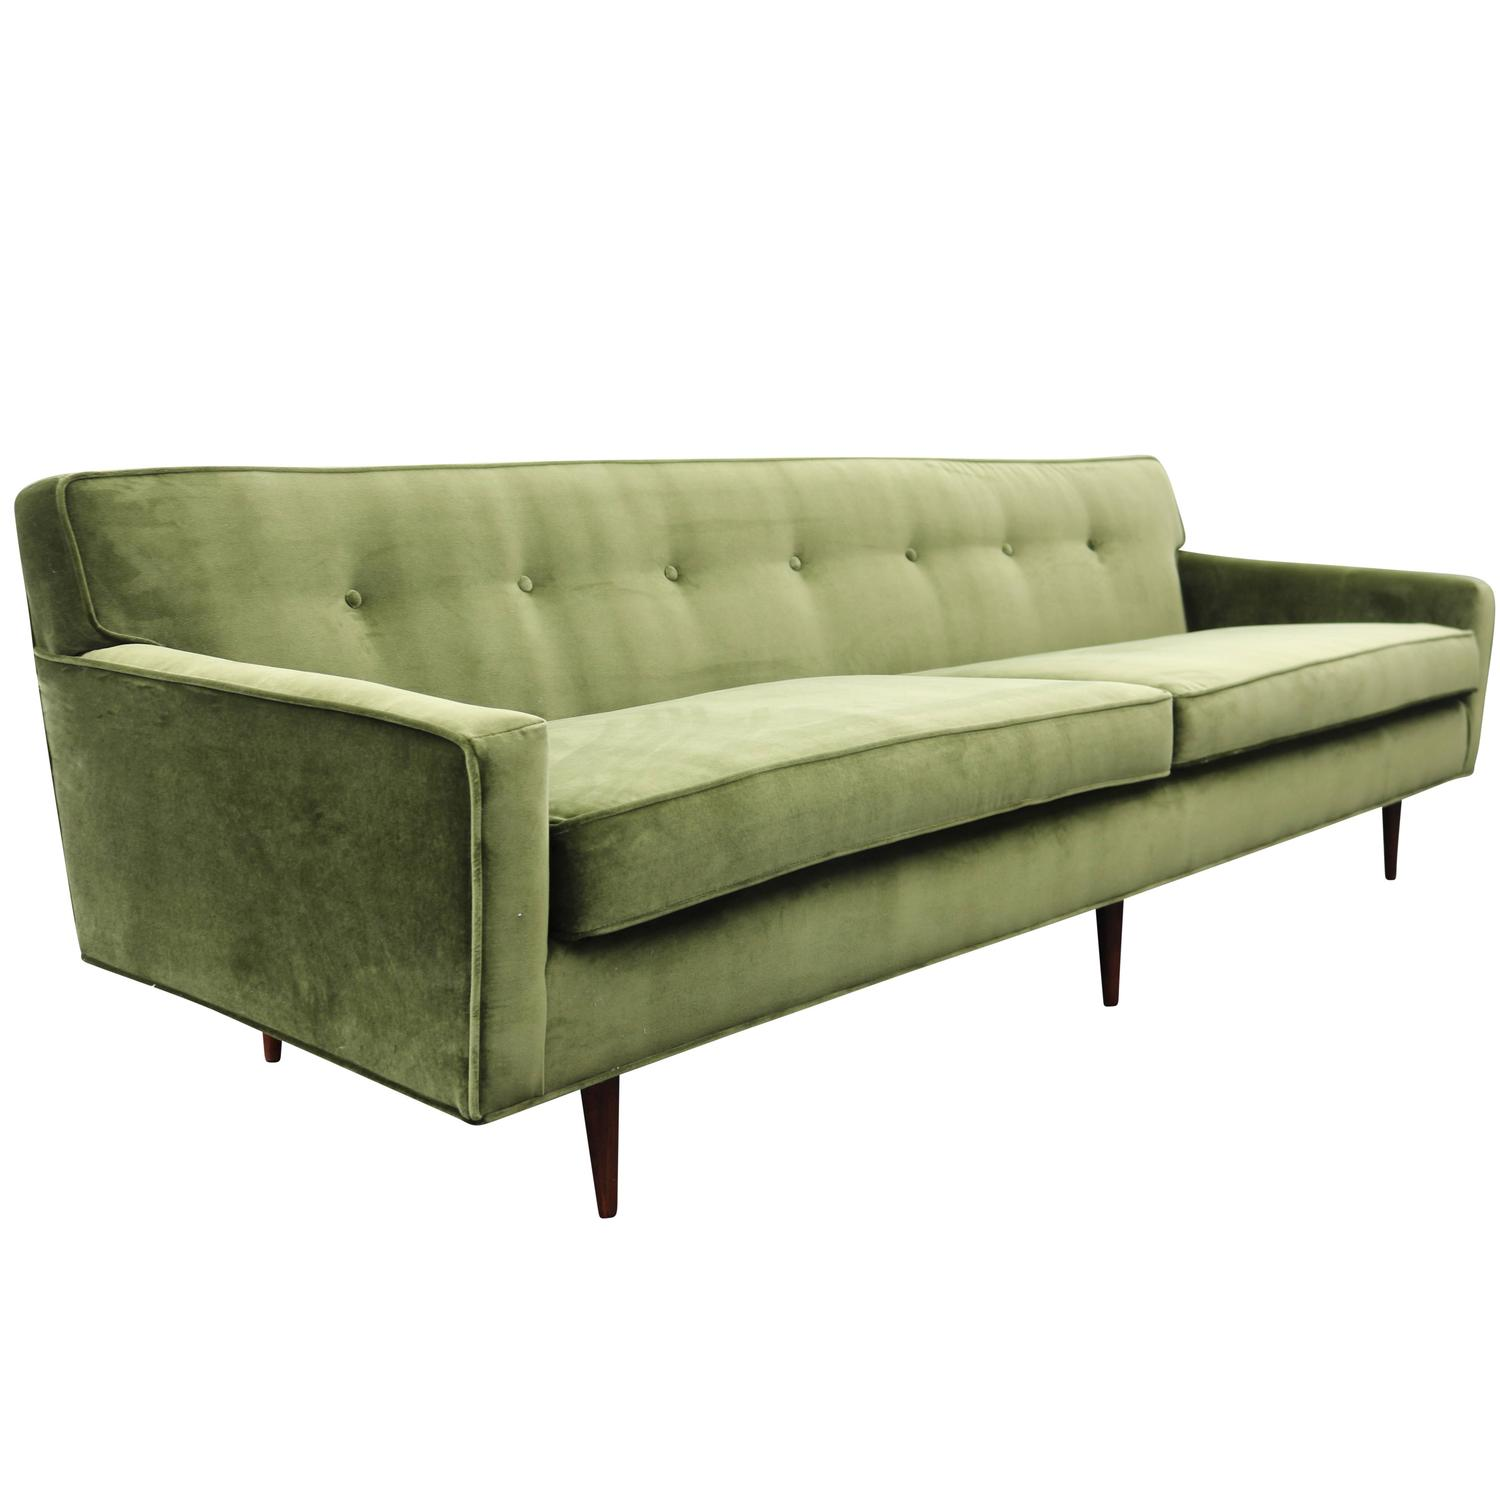 gorgeous green velvet mid century modern sofa at 1stdibs. Black Bedroom Furniture Sets. Home Design Ideas